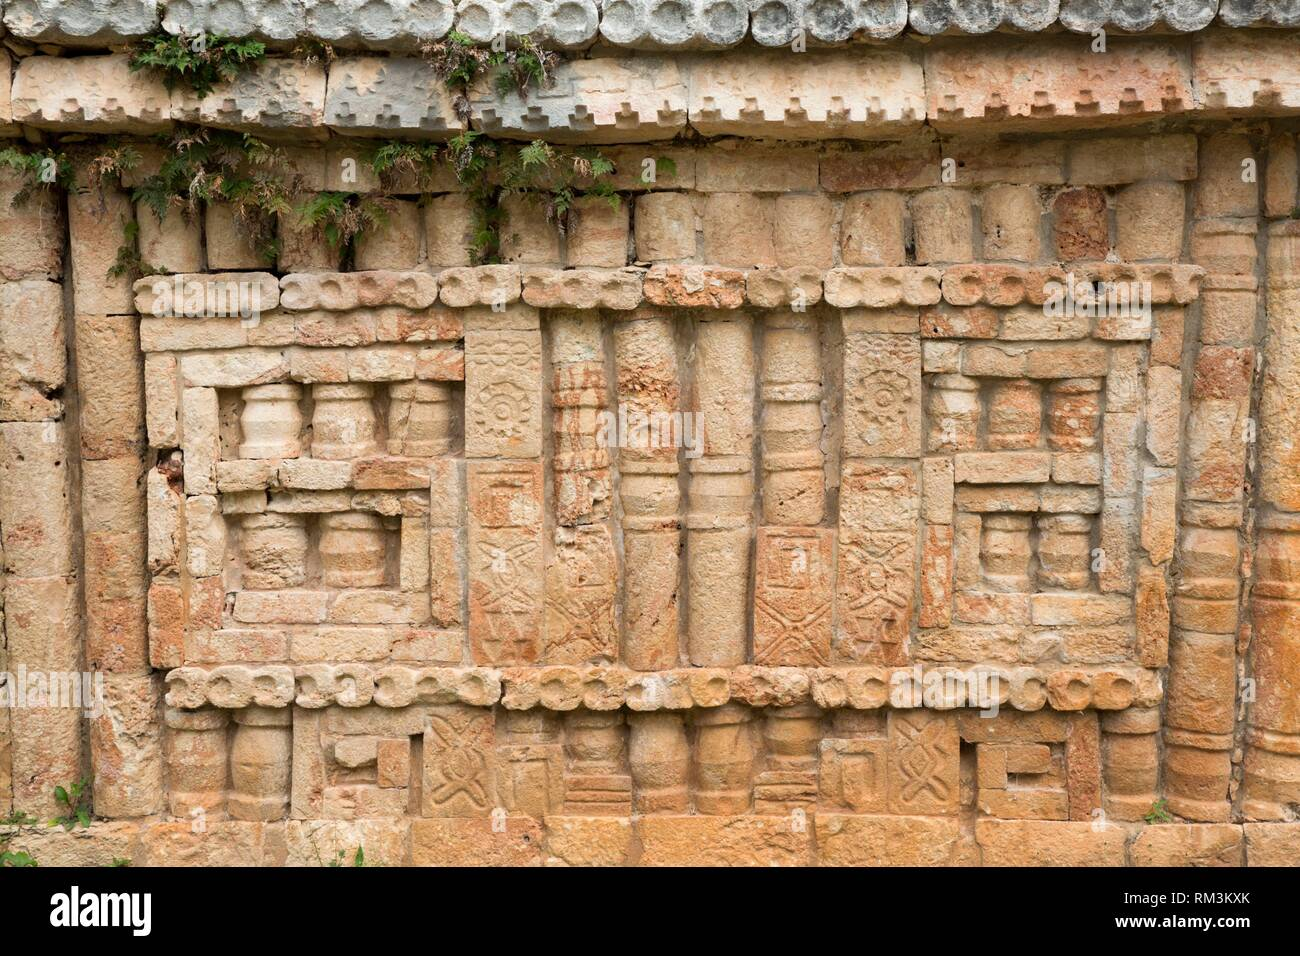 Carved Colums near Arch, Labna Archaeological Site, Mayan Ruins, Puuc Style, Yucatan, Mexico - Stock Image